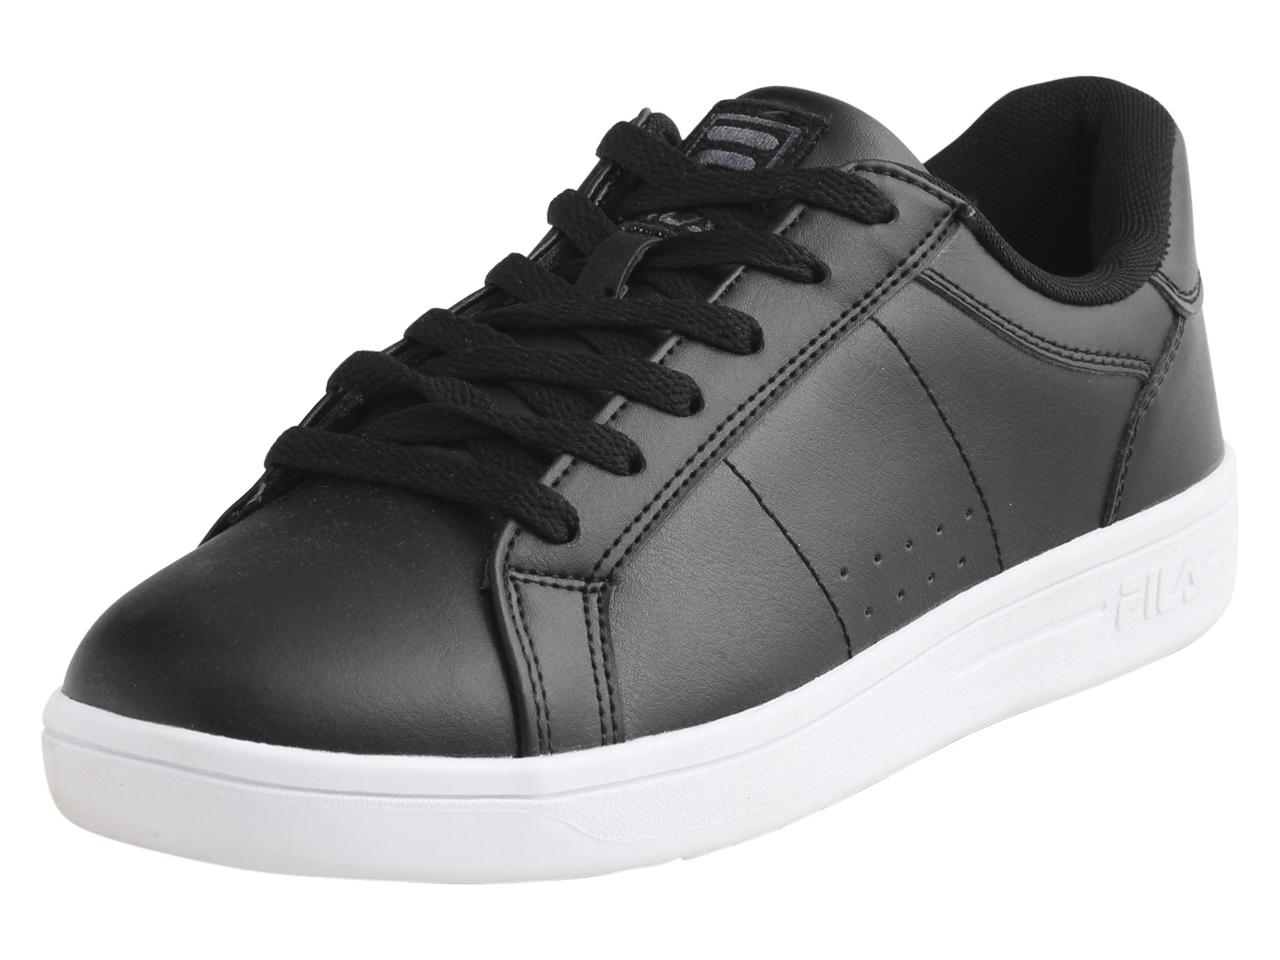 Fila Men's Campora Sneakers Shoes